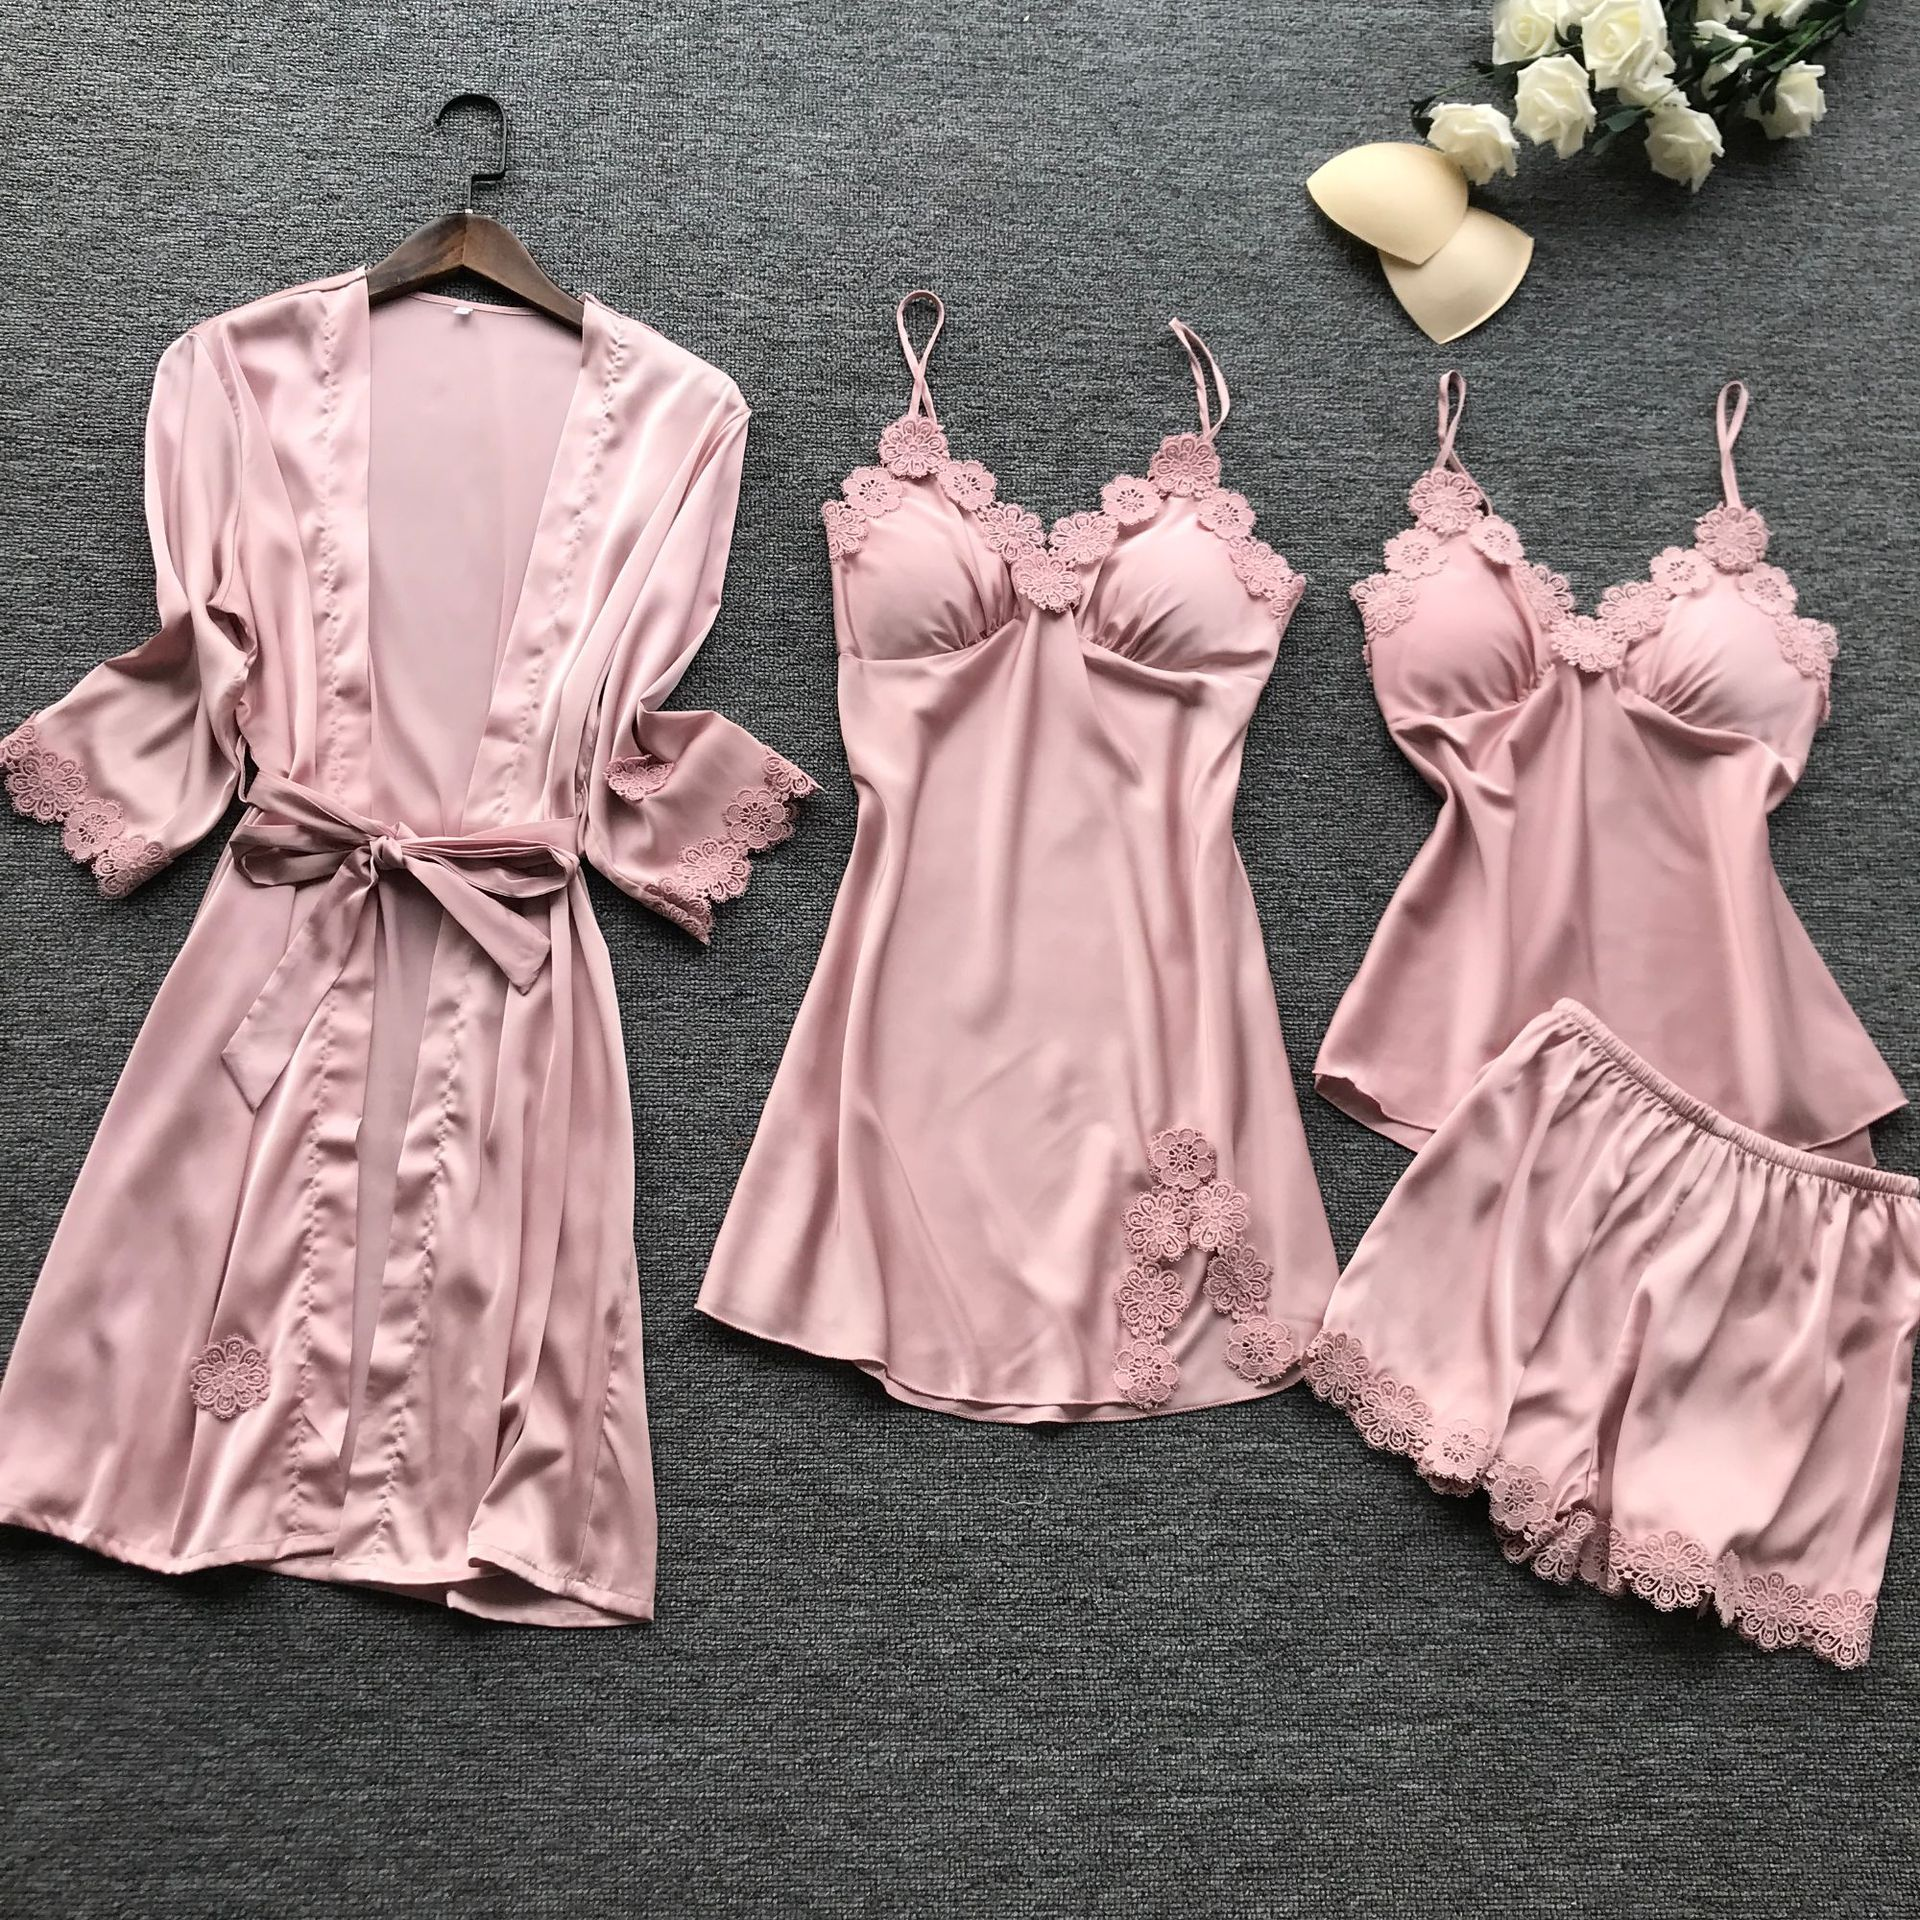 2019 Women Pajamas Set Satin Pyjama Sexy Lace Pijama Mujer Sexy Lingerie Elegant Nightwear Silk 4 Pieces Flower Print Sleepwear